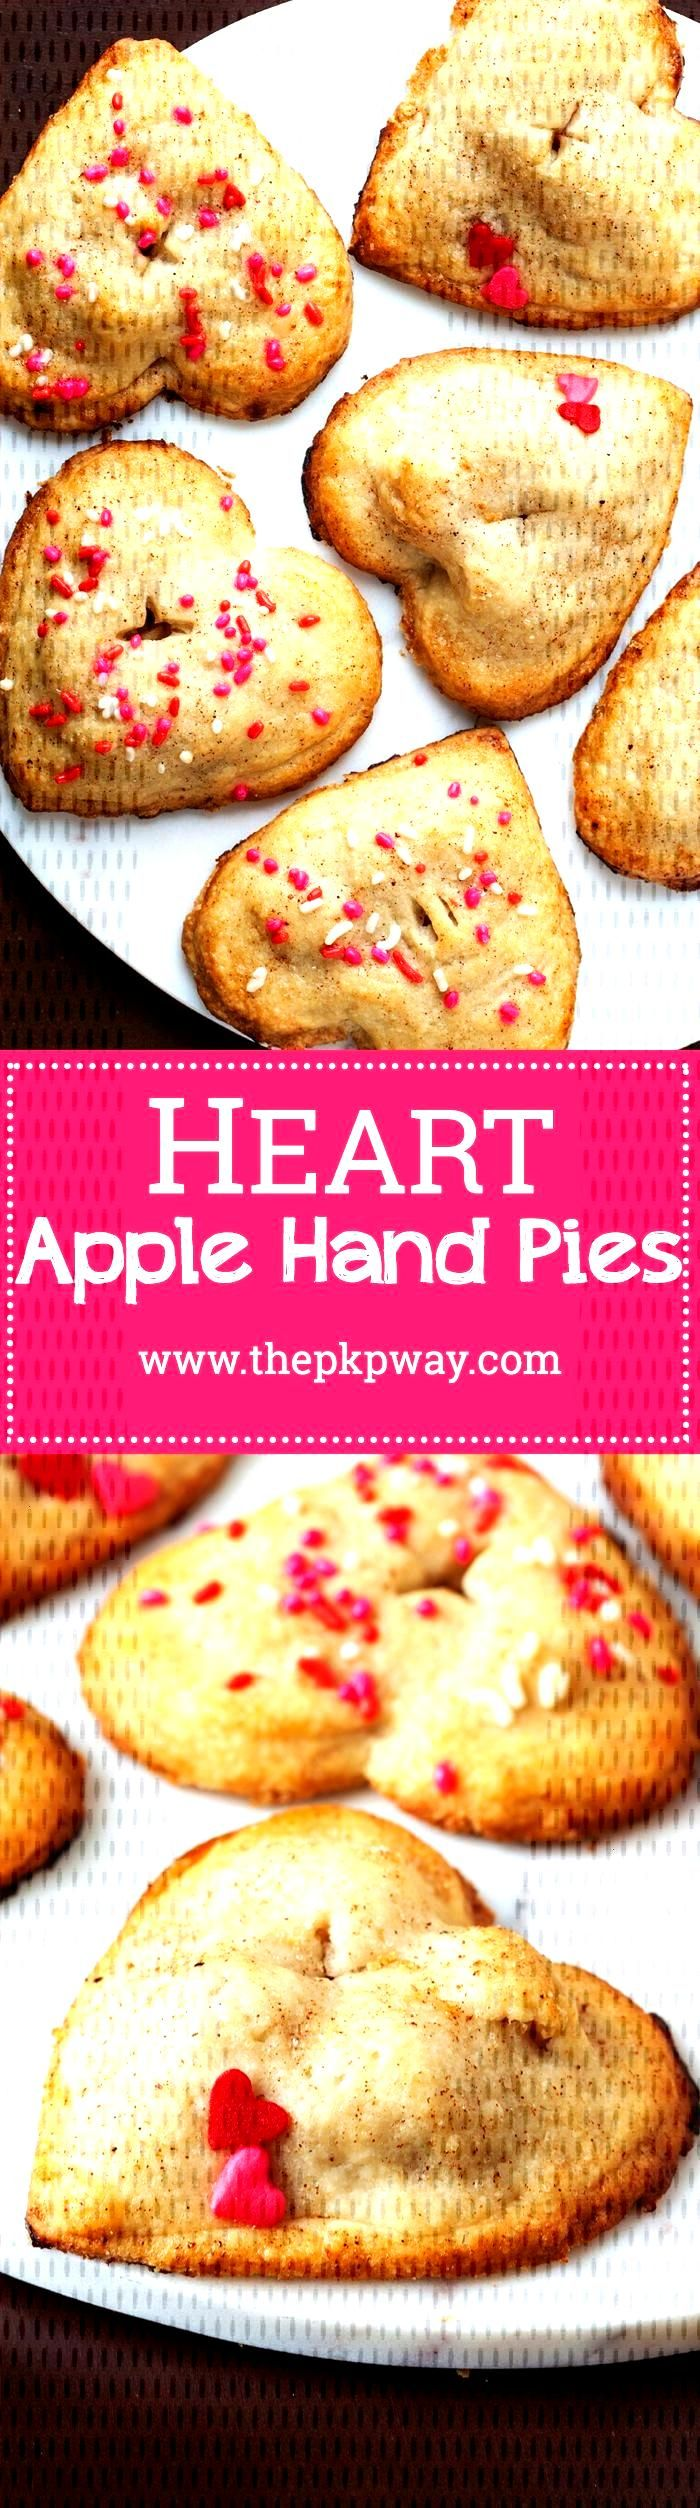 Valentine's Day Apple Hand Pies | The PKP Way - Emily Asher - Valentine's Day Apple Hand Pies |